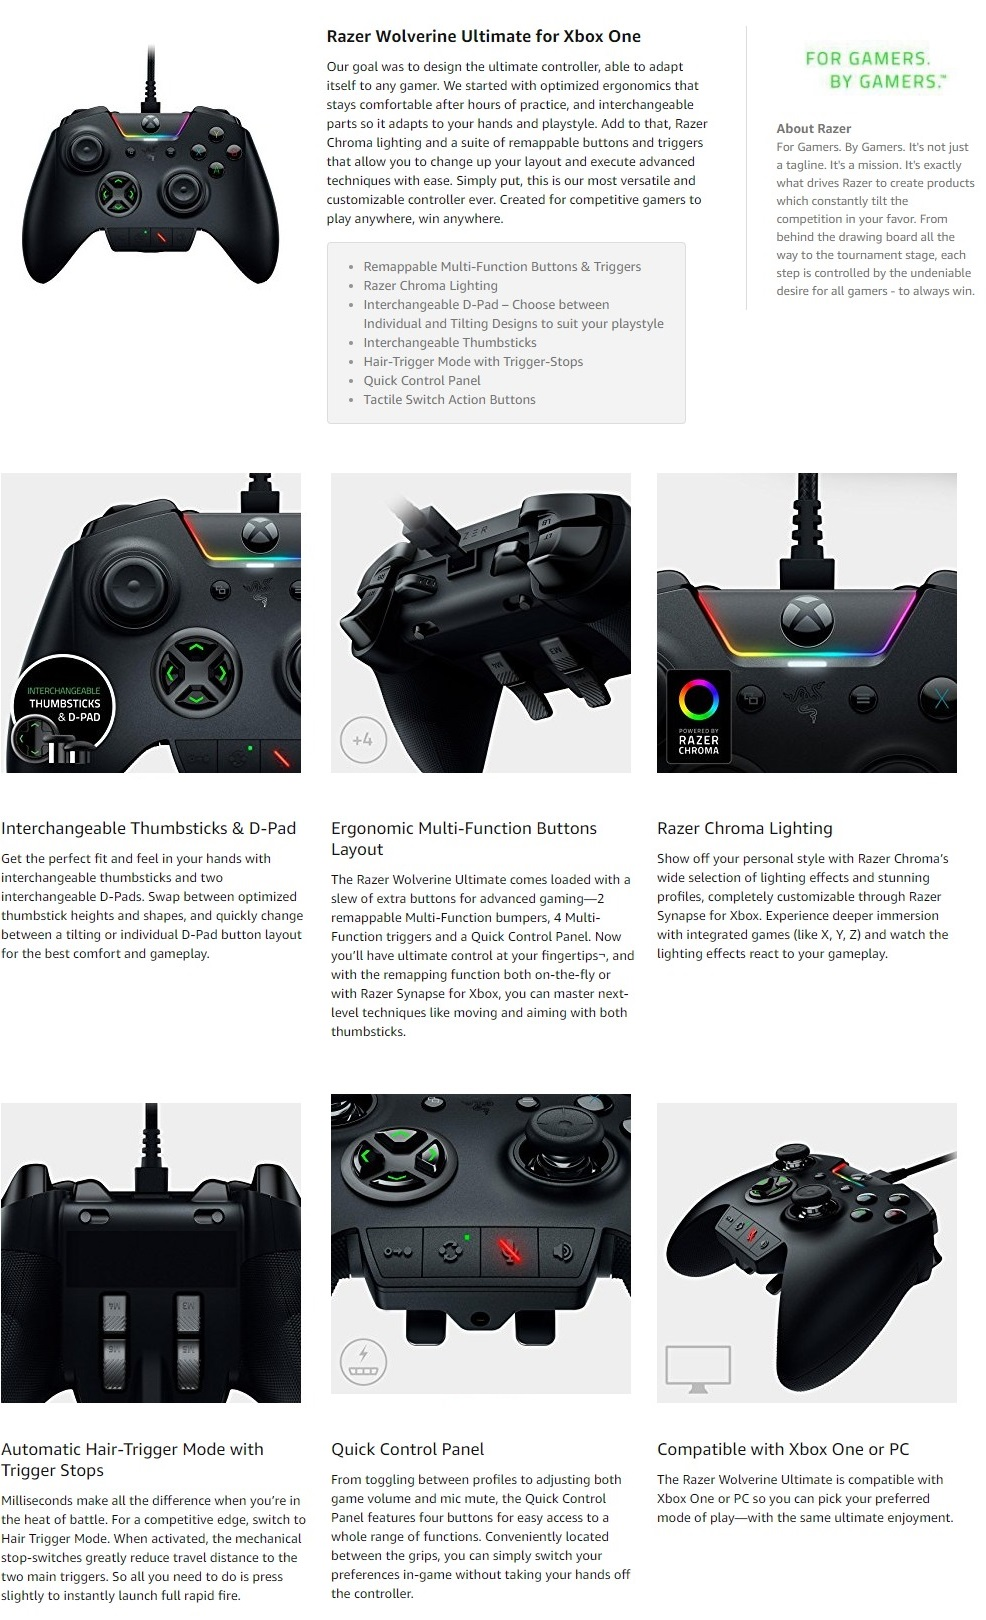 Razer Wolverine Ultimate Controller for Xbox One | BEST